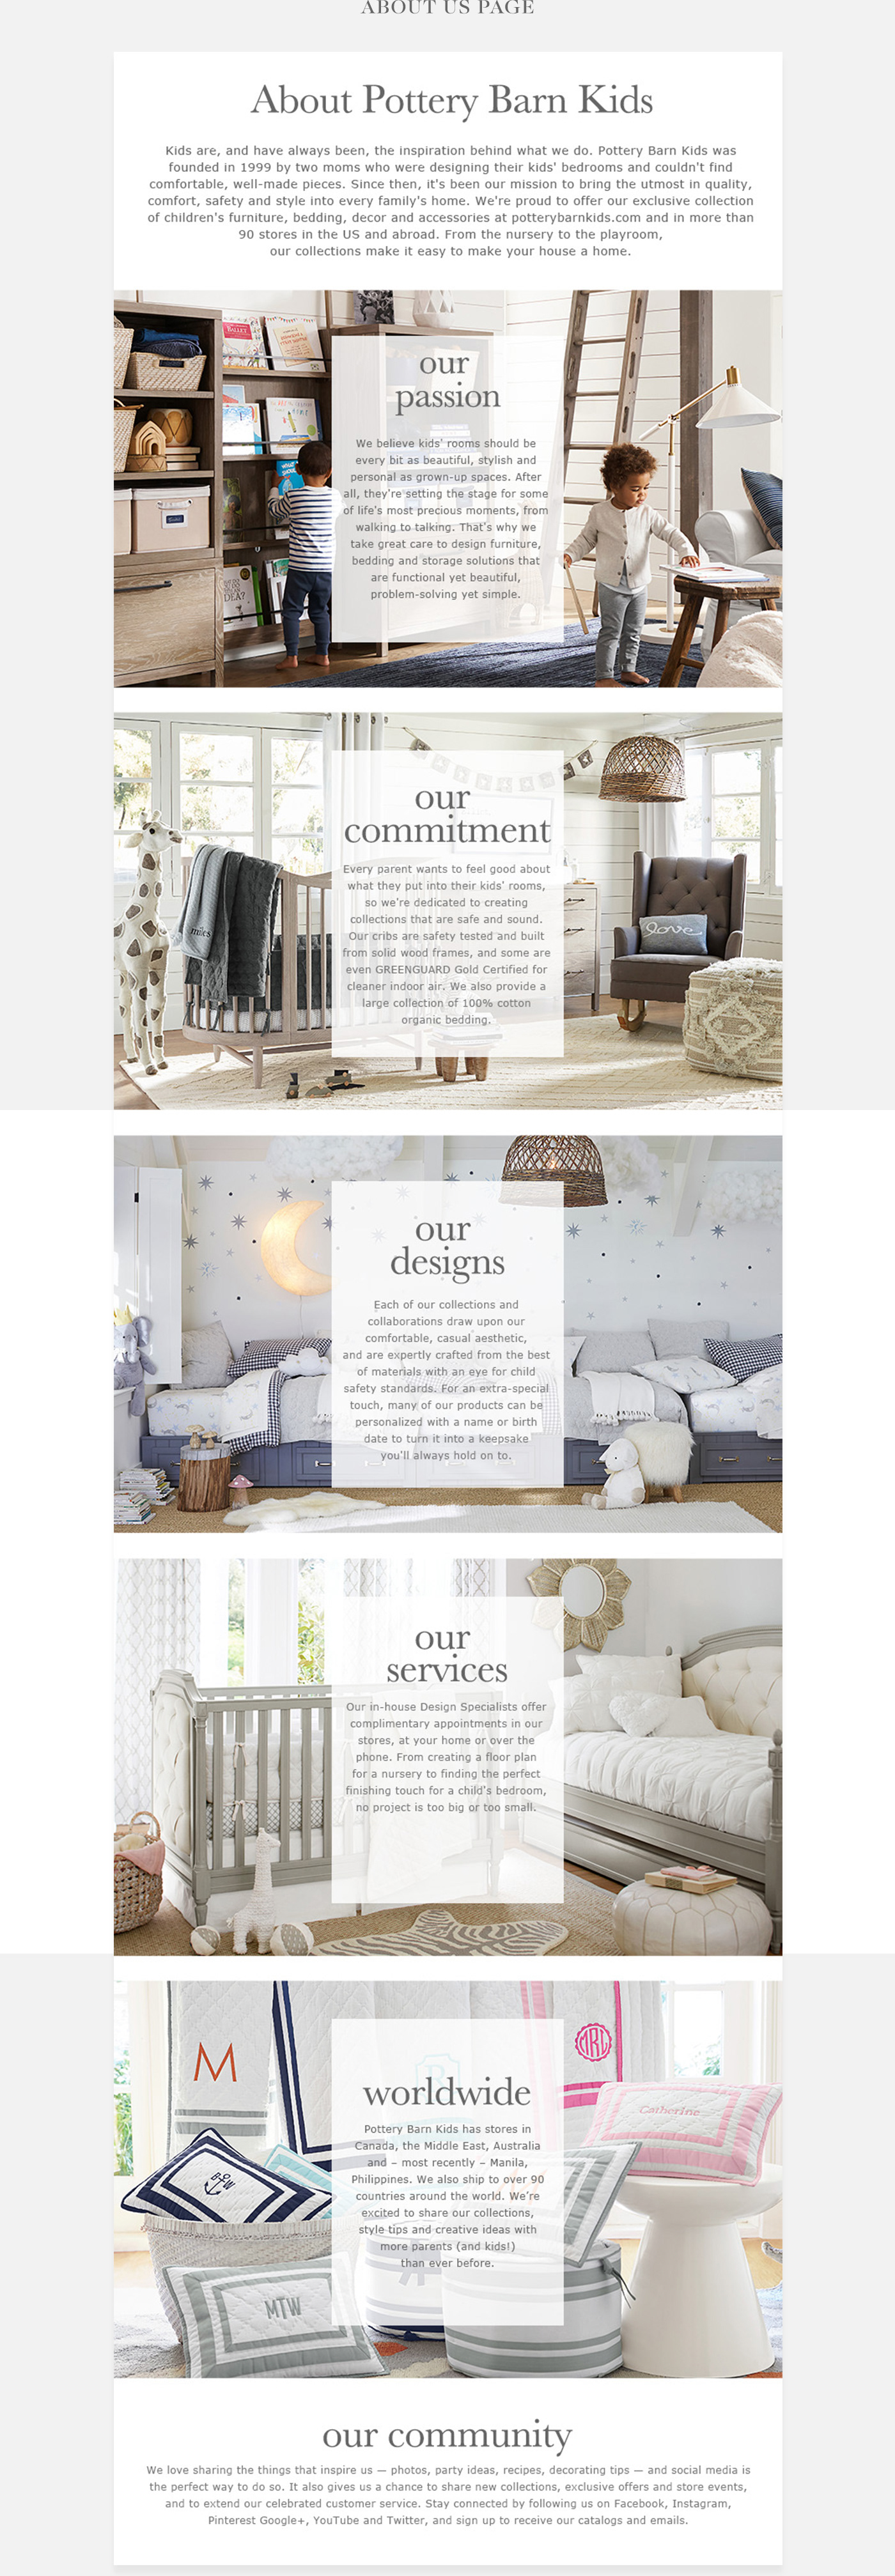 fancy design wonderful room improvement at play awesome pottery home with barn images kids ideas barns kitchen